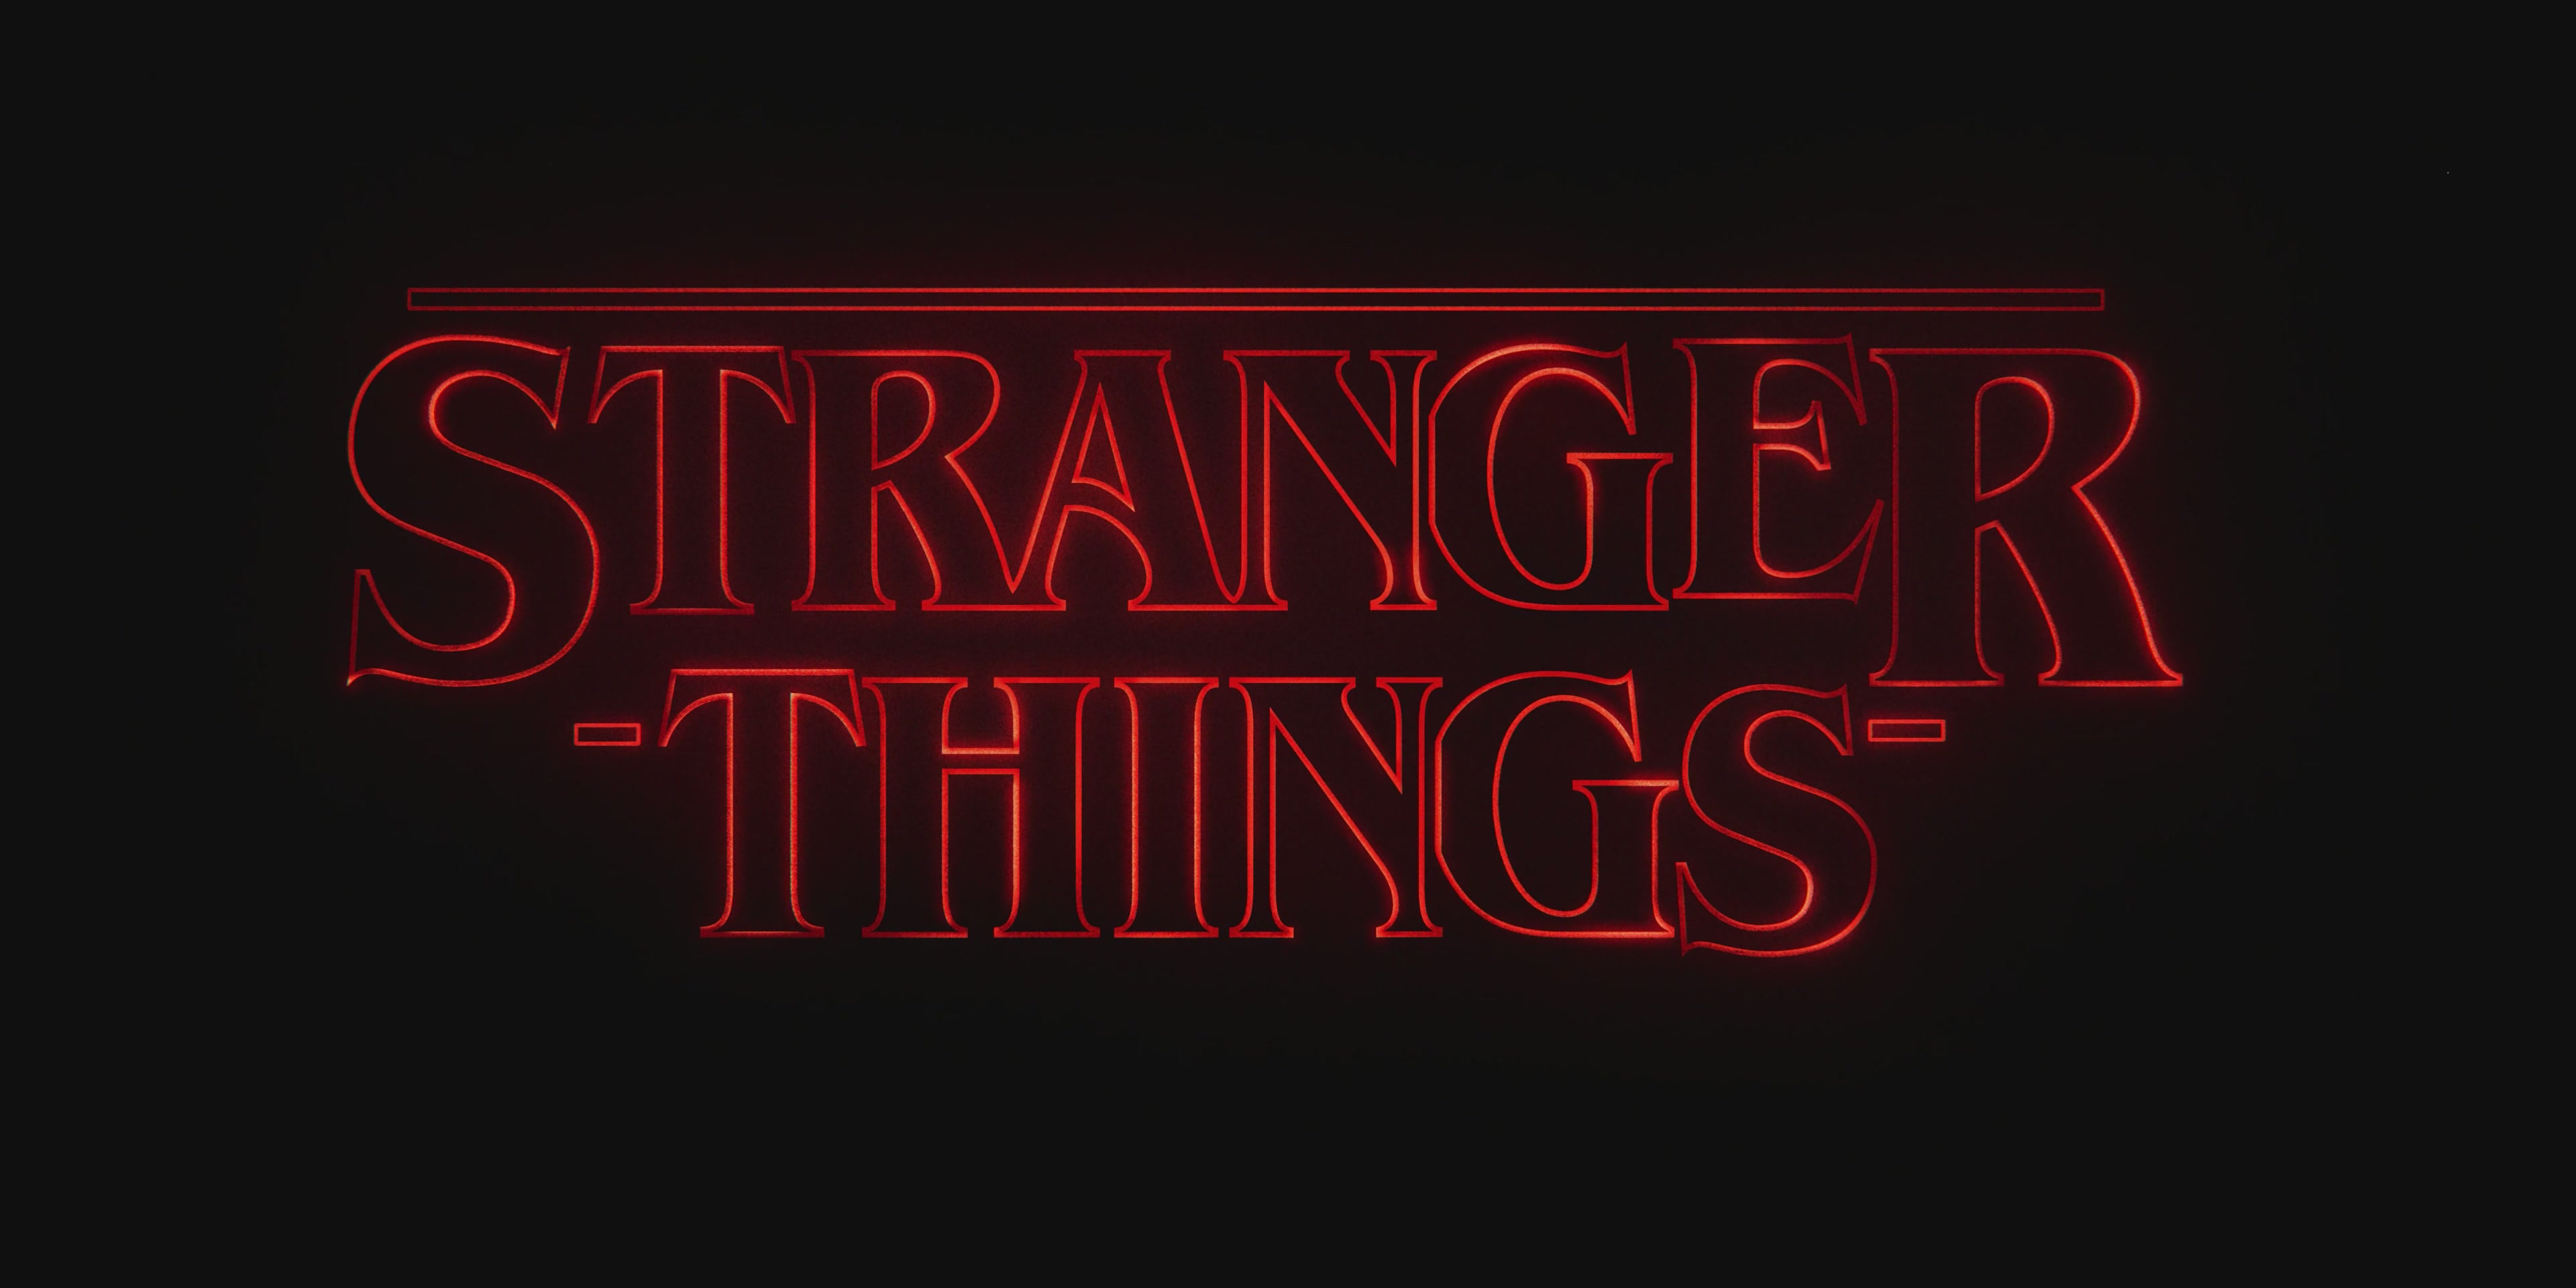 'Stranger Things' Ultra HD Screen Captures